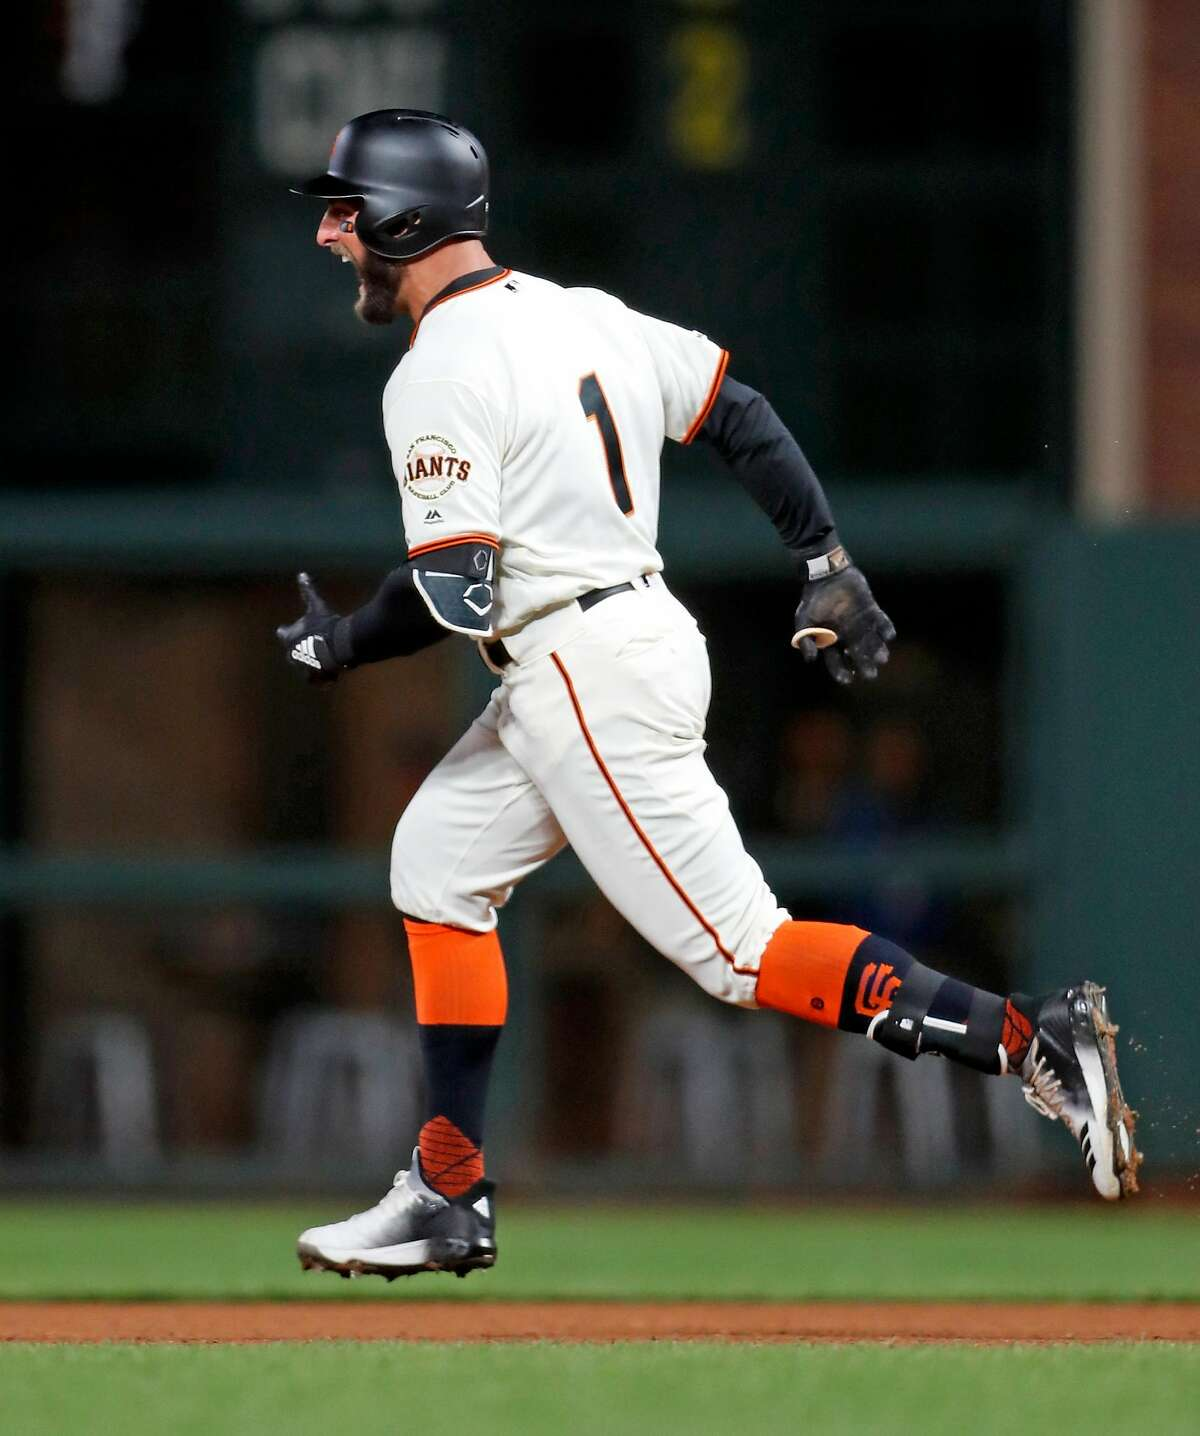 San Francisco Giants' Kevin Pillar reacts as he rounds the bases after hitting solo home run in 7th inning against Colorado Rockies during MLB game at Oracle Park in San Francisco, Calif., on Thursday, April 11, 2019.